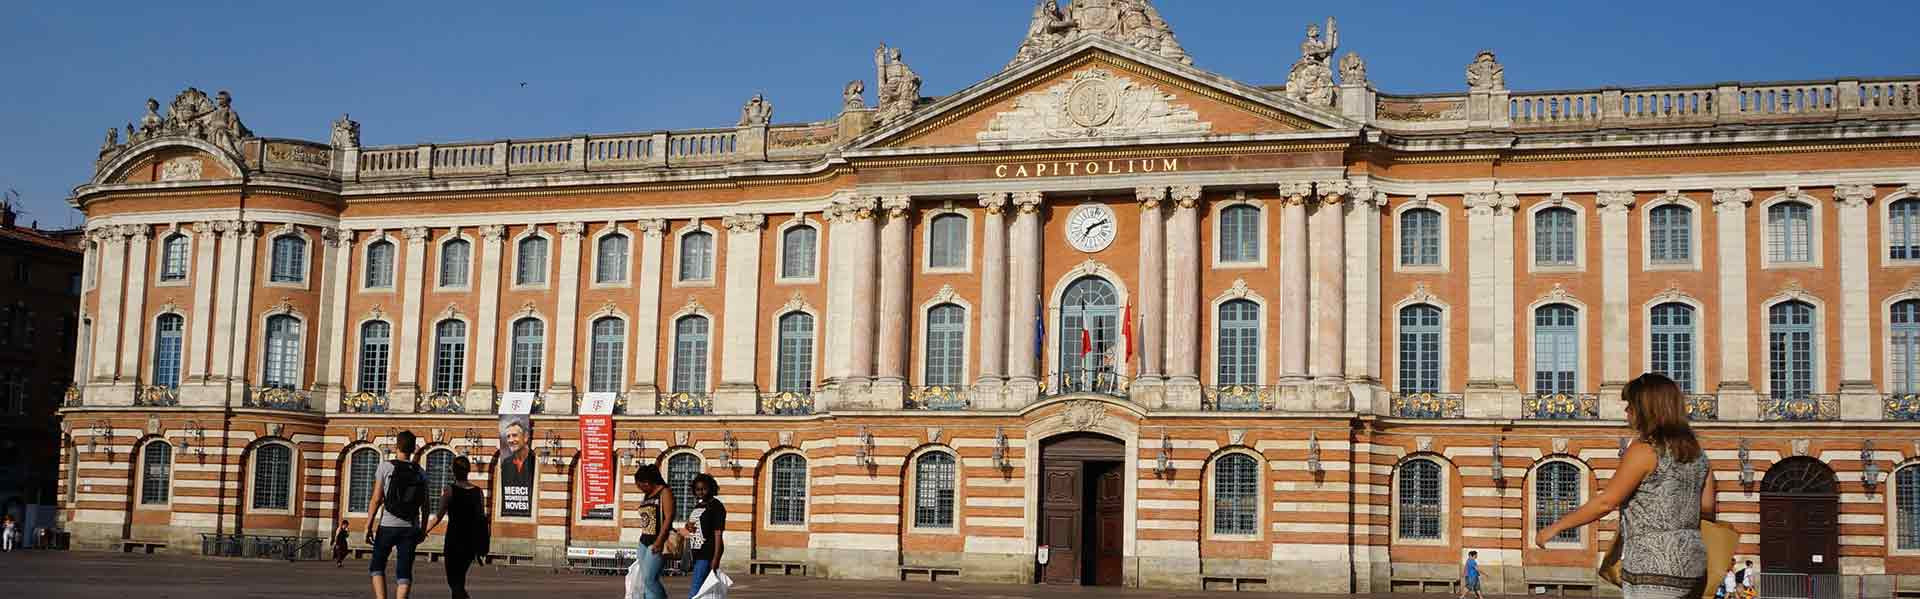 Capital Building in the City of Toulouse in Occitaine, France